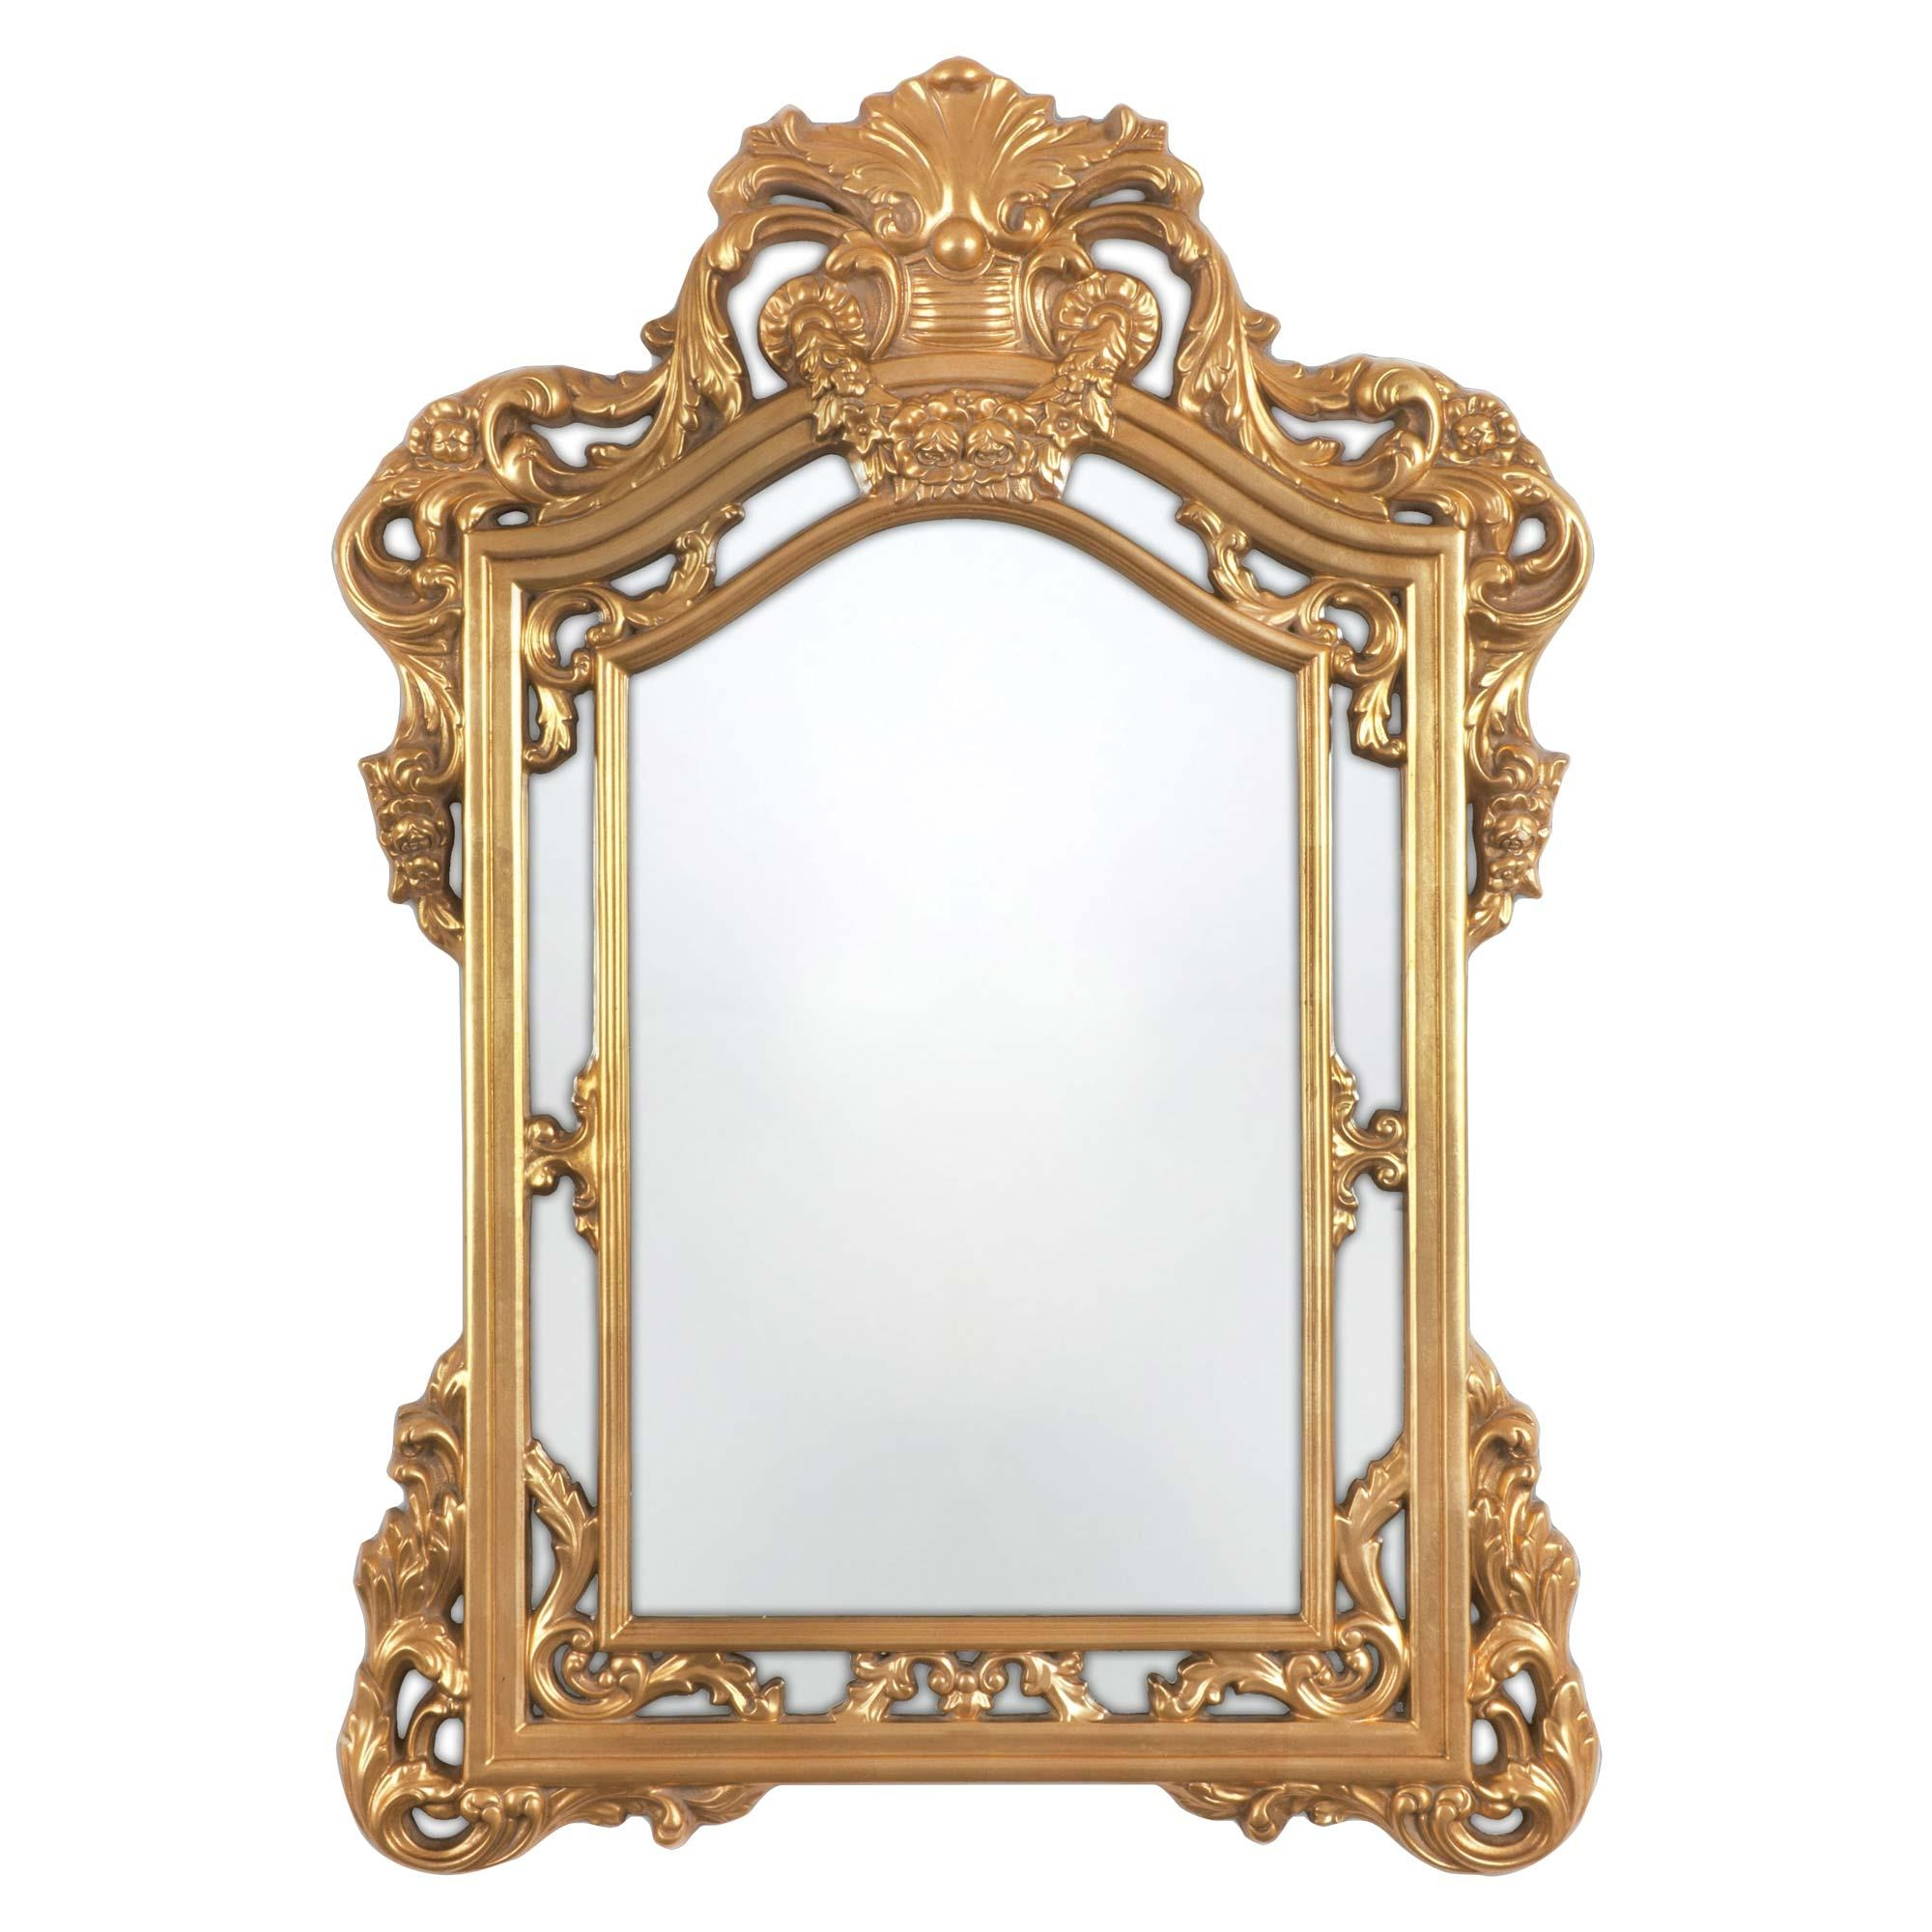 Bathroom: Astounding Baroque Mirror With Unique Frame For Bathroom Within Baroque Mirror Silver (Image 6 of 20)